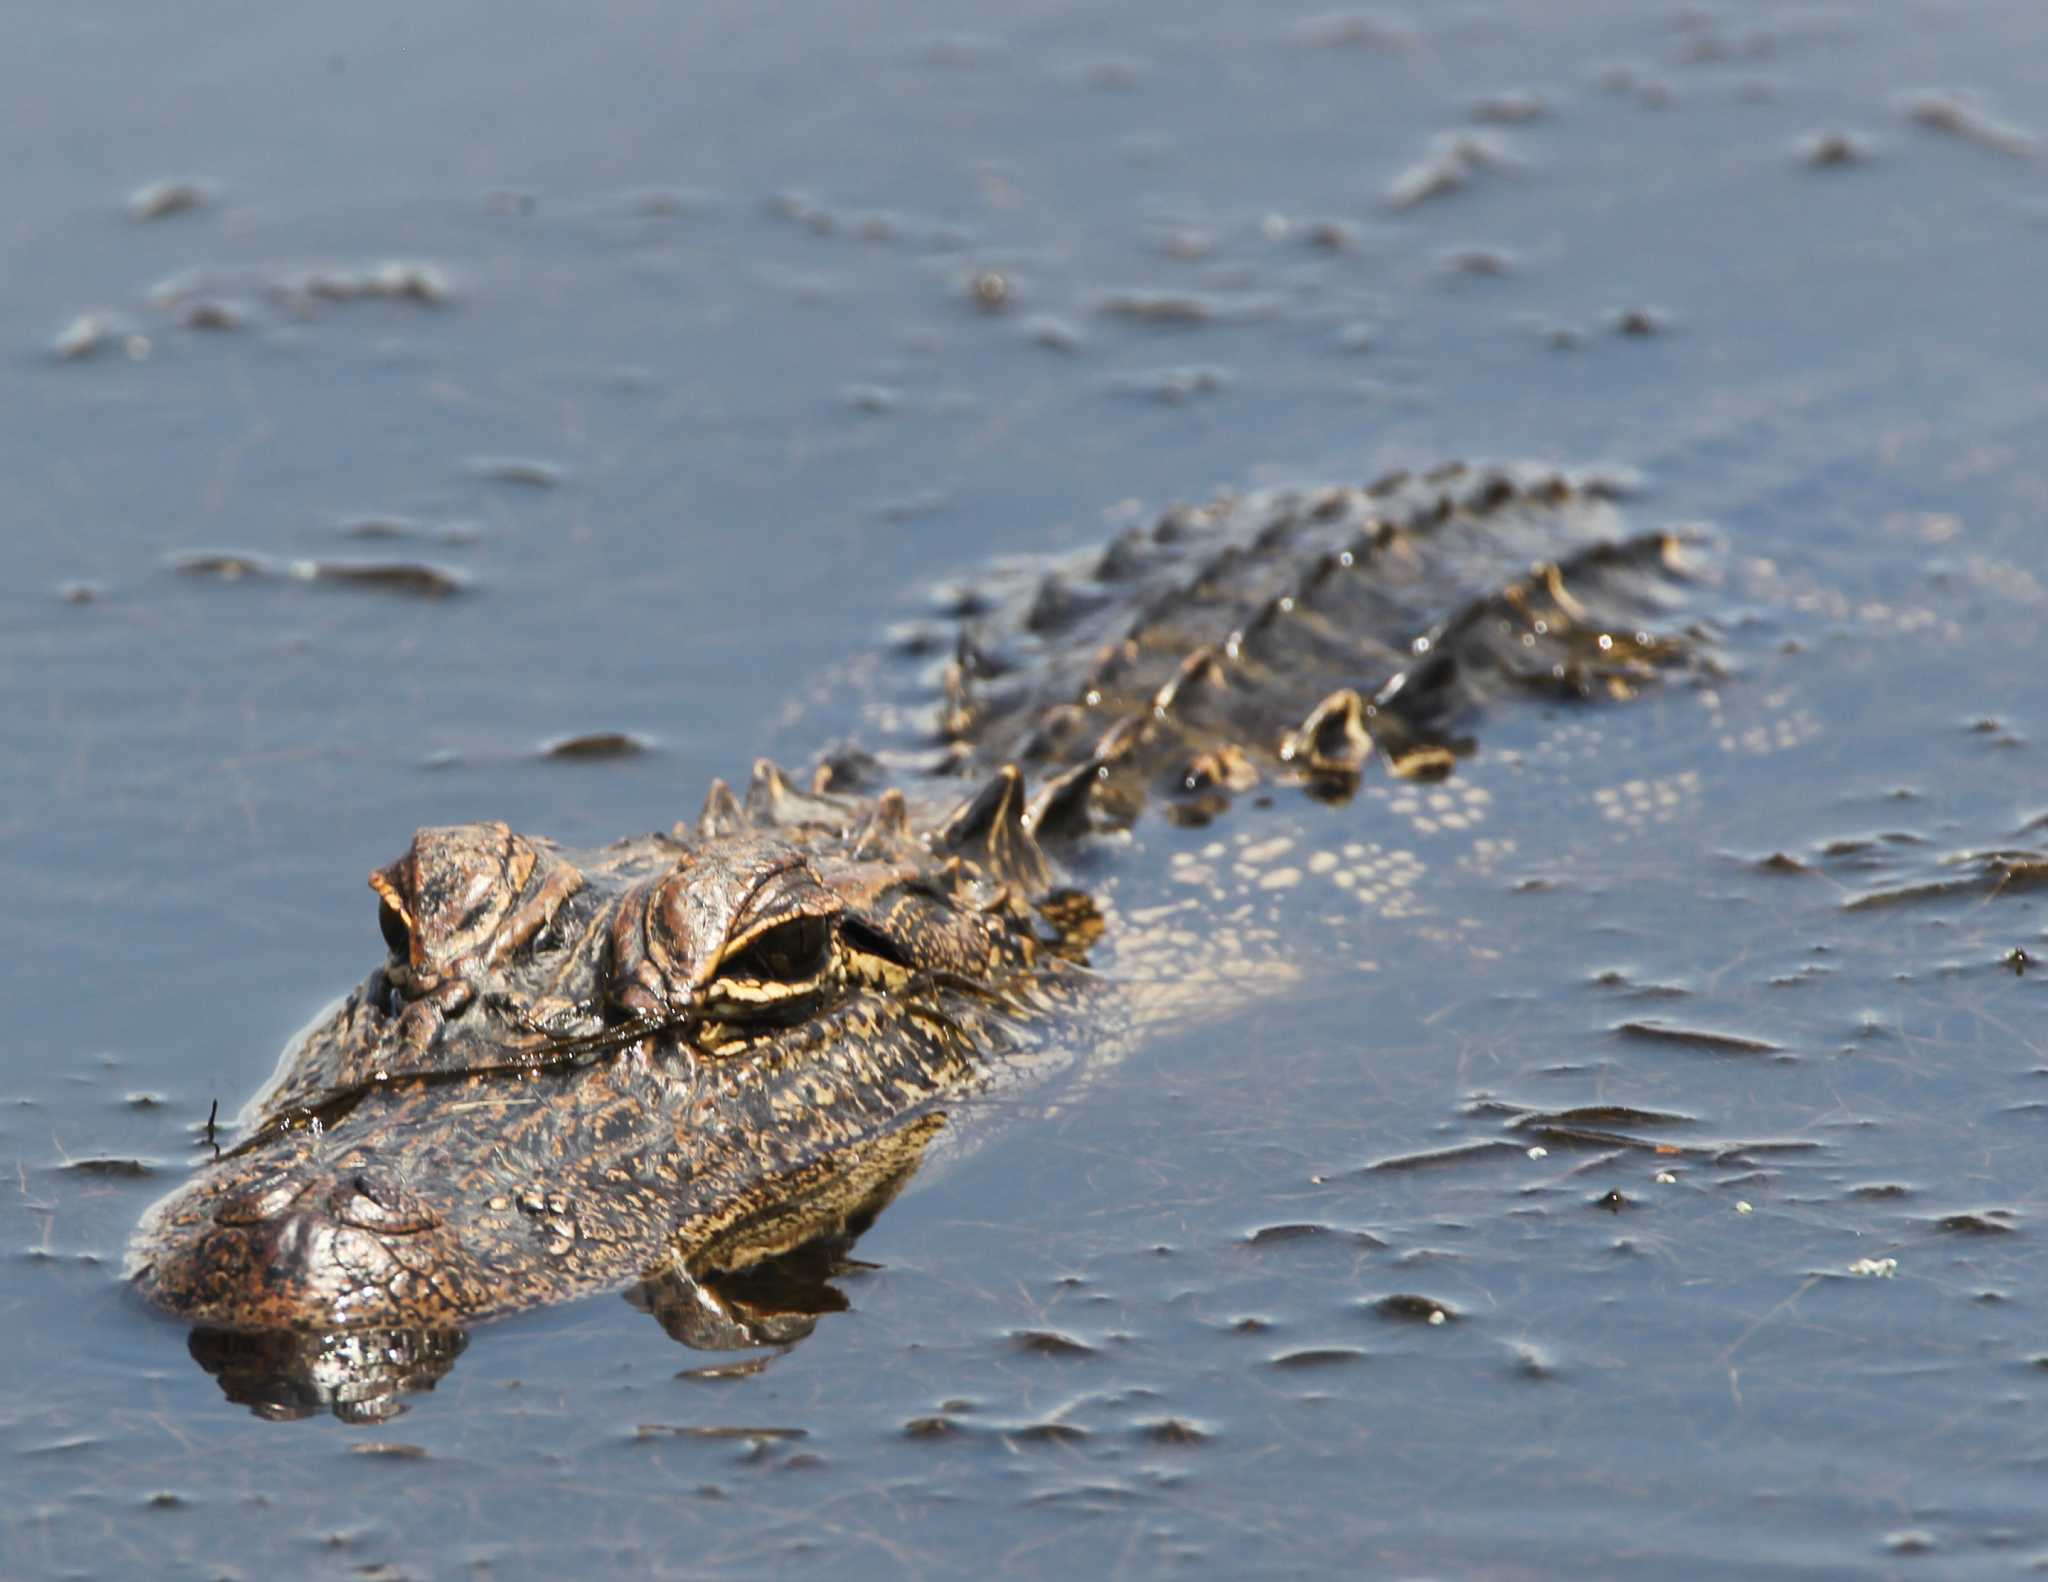 Images of alligators in water